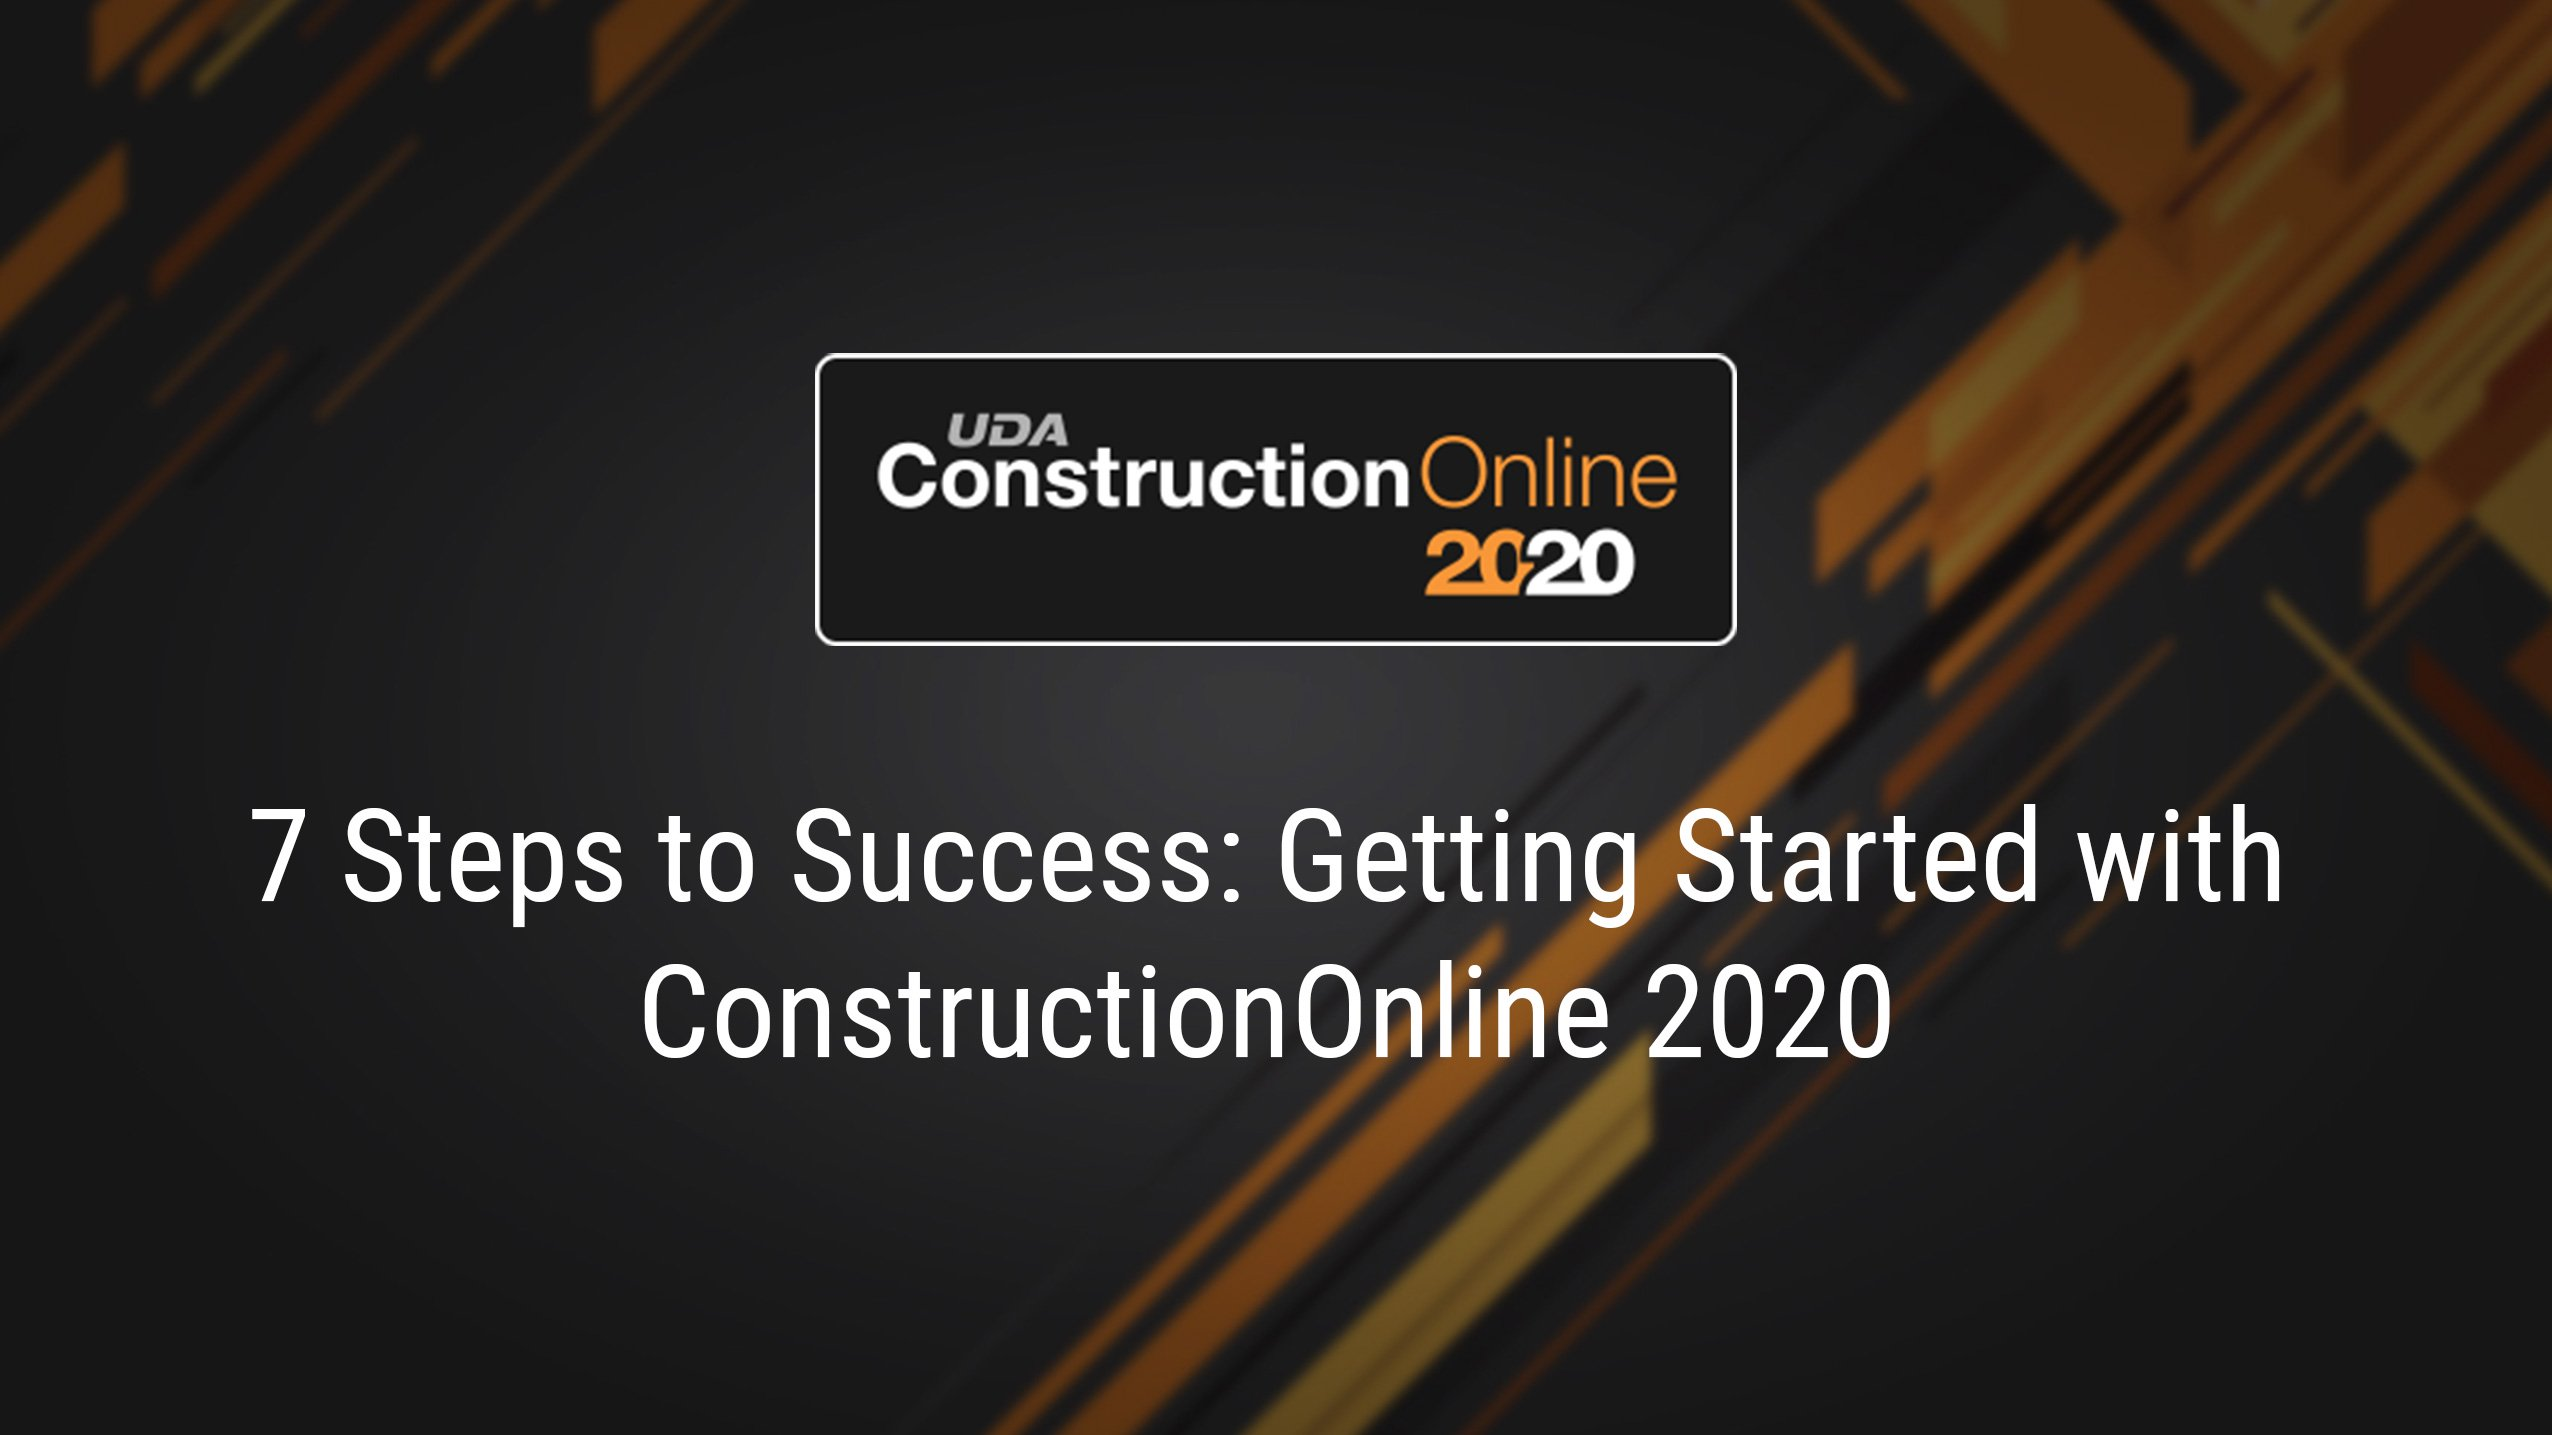 7+Steps+to+Success+-+Getting+Started+with+ConstructionOnline+2020